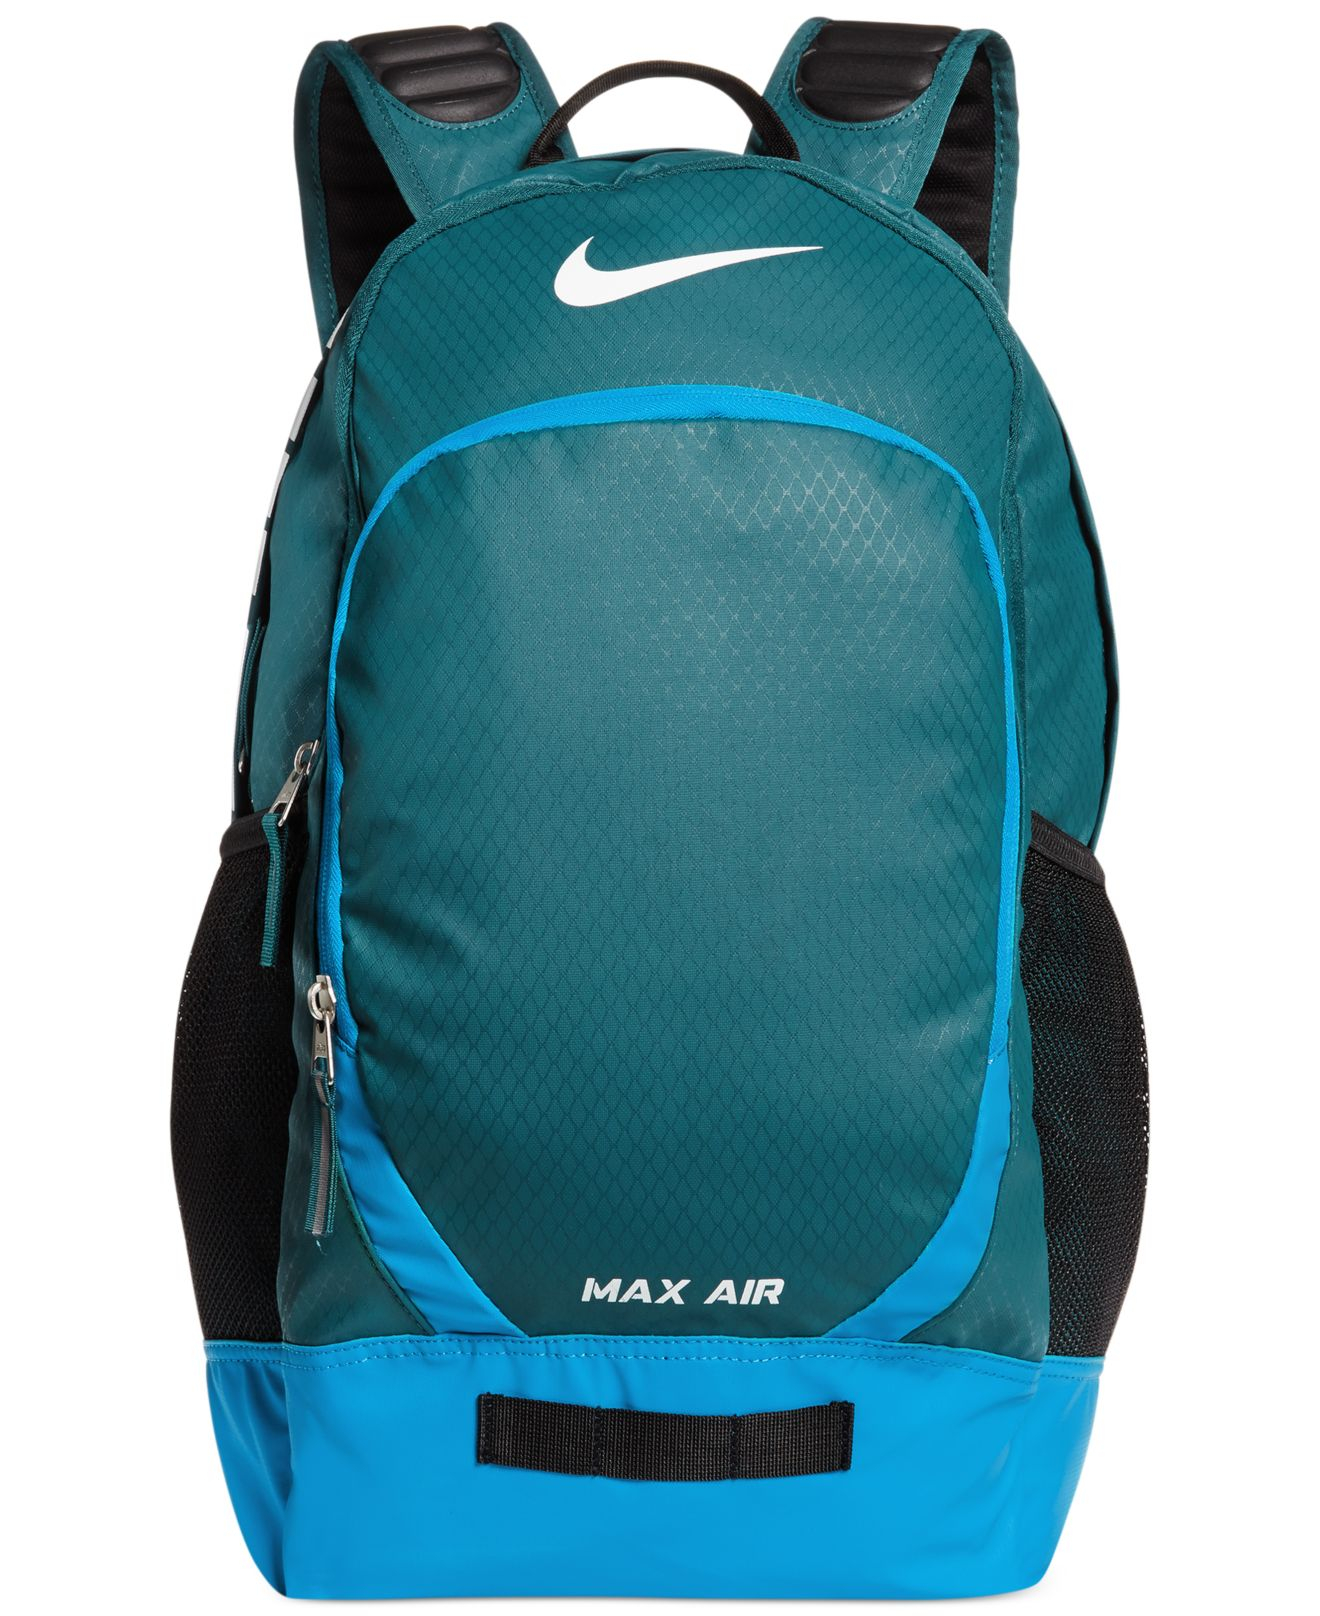 365d4ea350d ... discount sale 238b3 bc72b Lyst - Nike Max Air Team Training Large  Backpack in Blue for ...